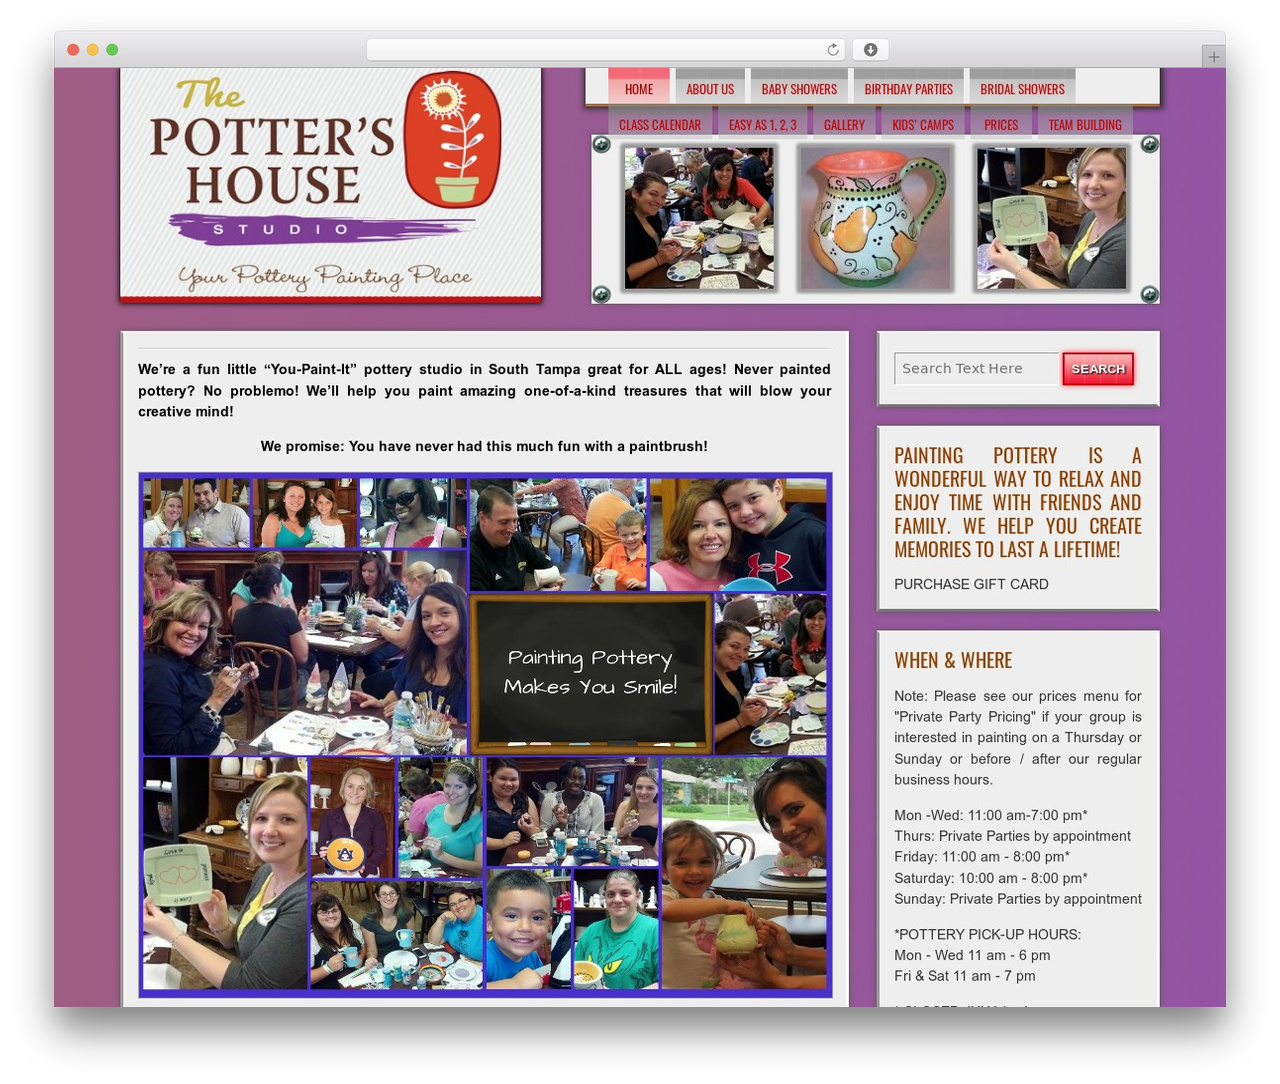 WP theme DISCUSSION - thepottershouse.biz